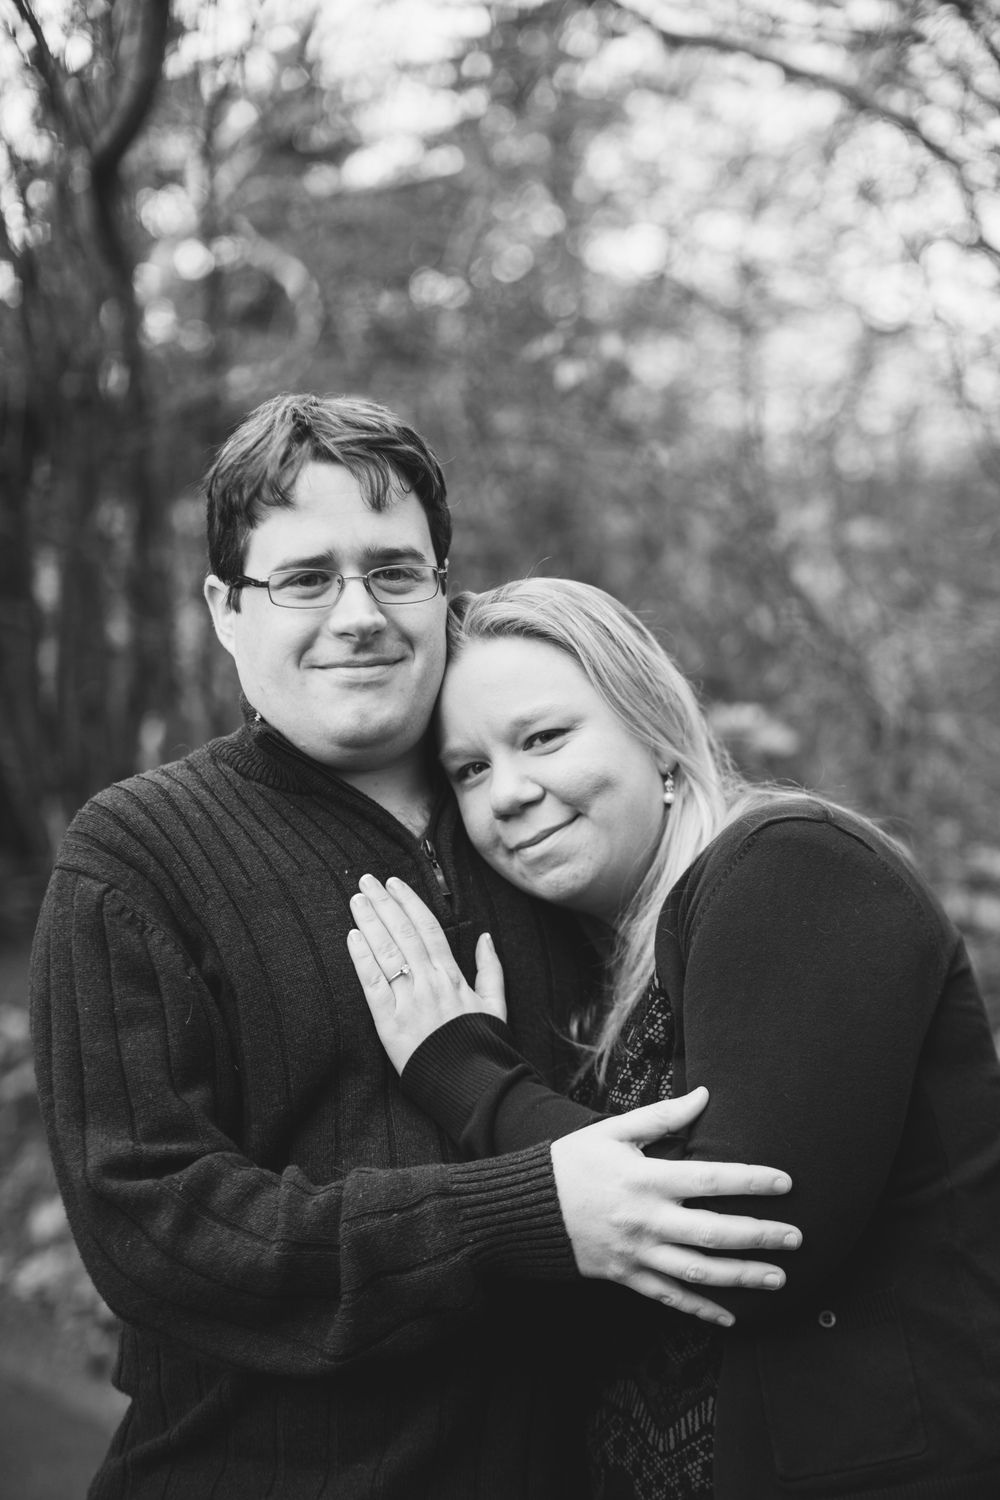 Mary & Bill engagement photos-4.jpg